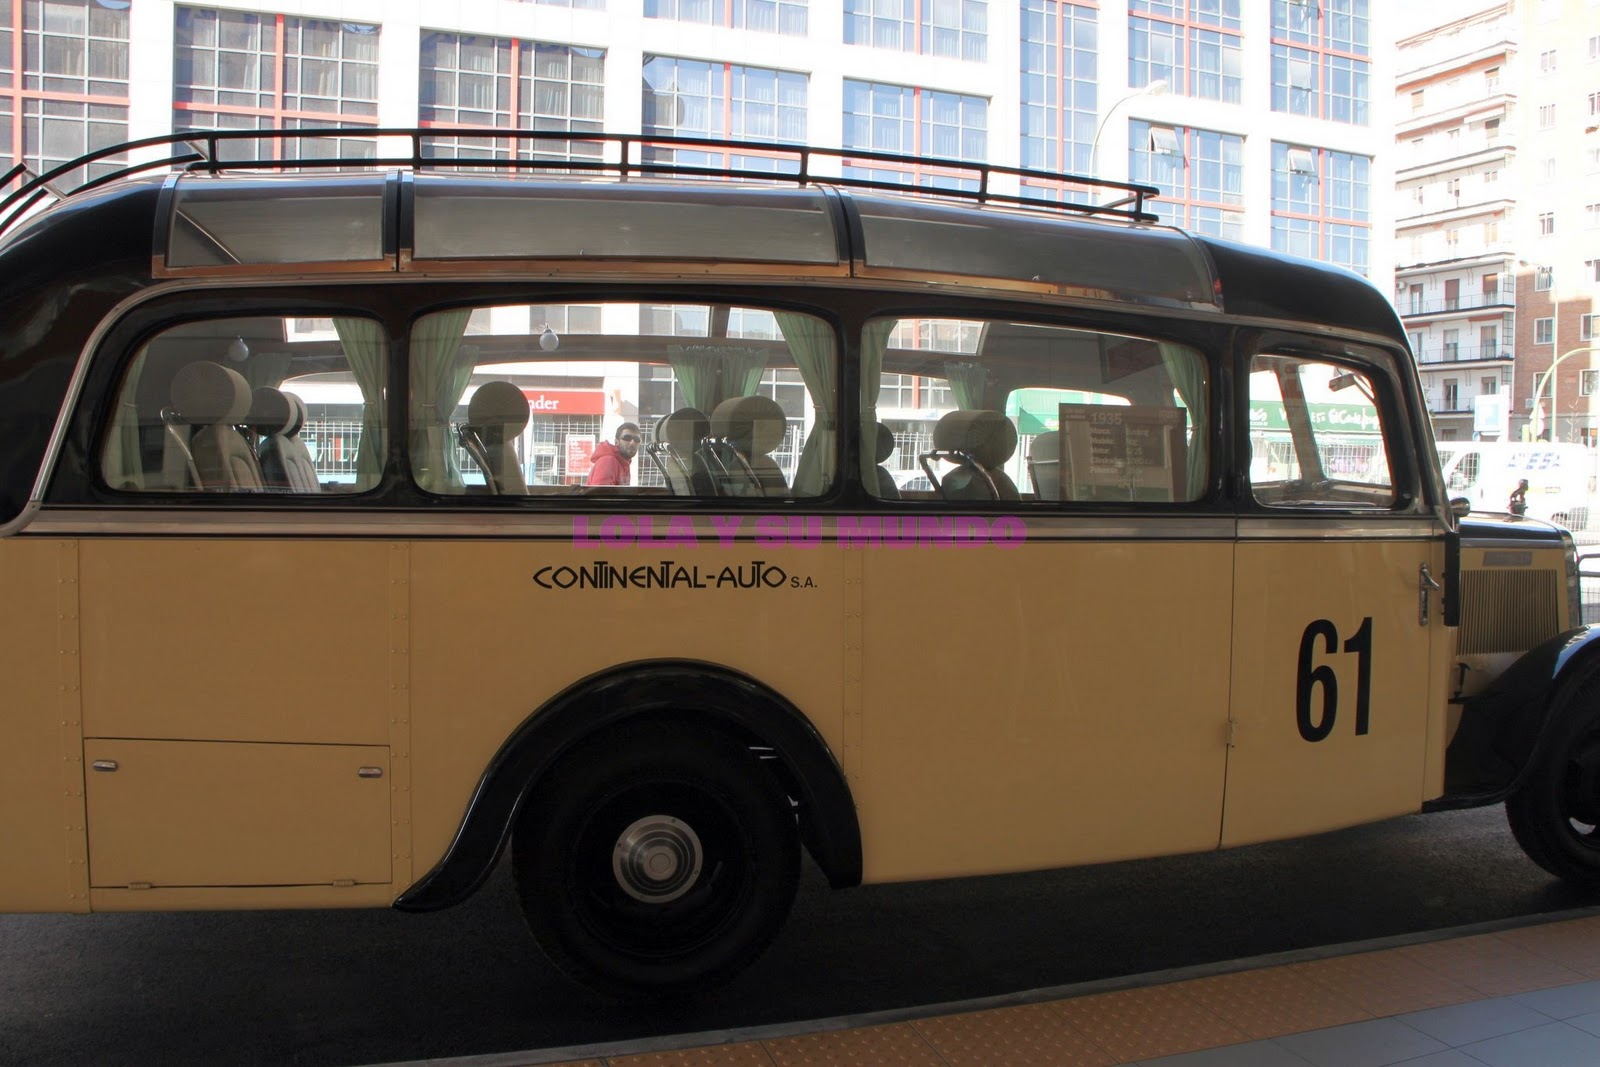 1000+ images about Autobuses antiguos on Pinterest